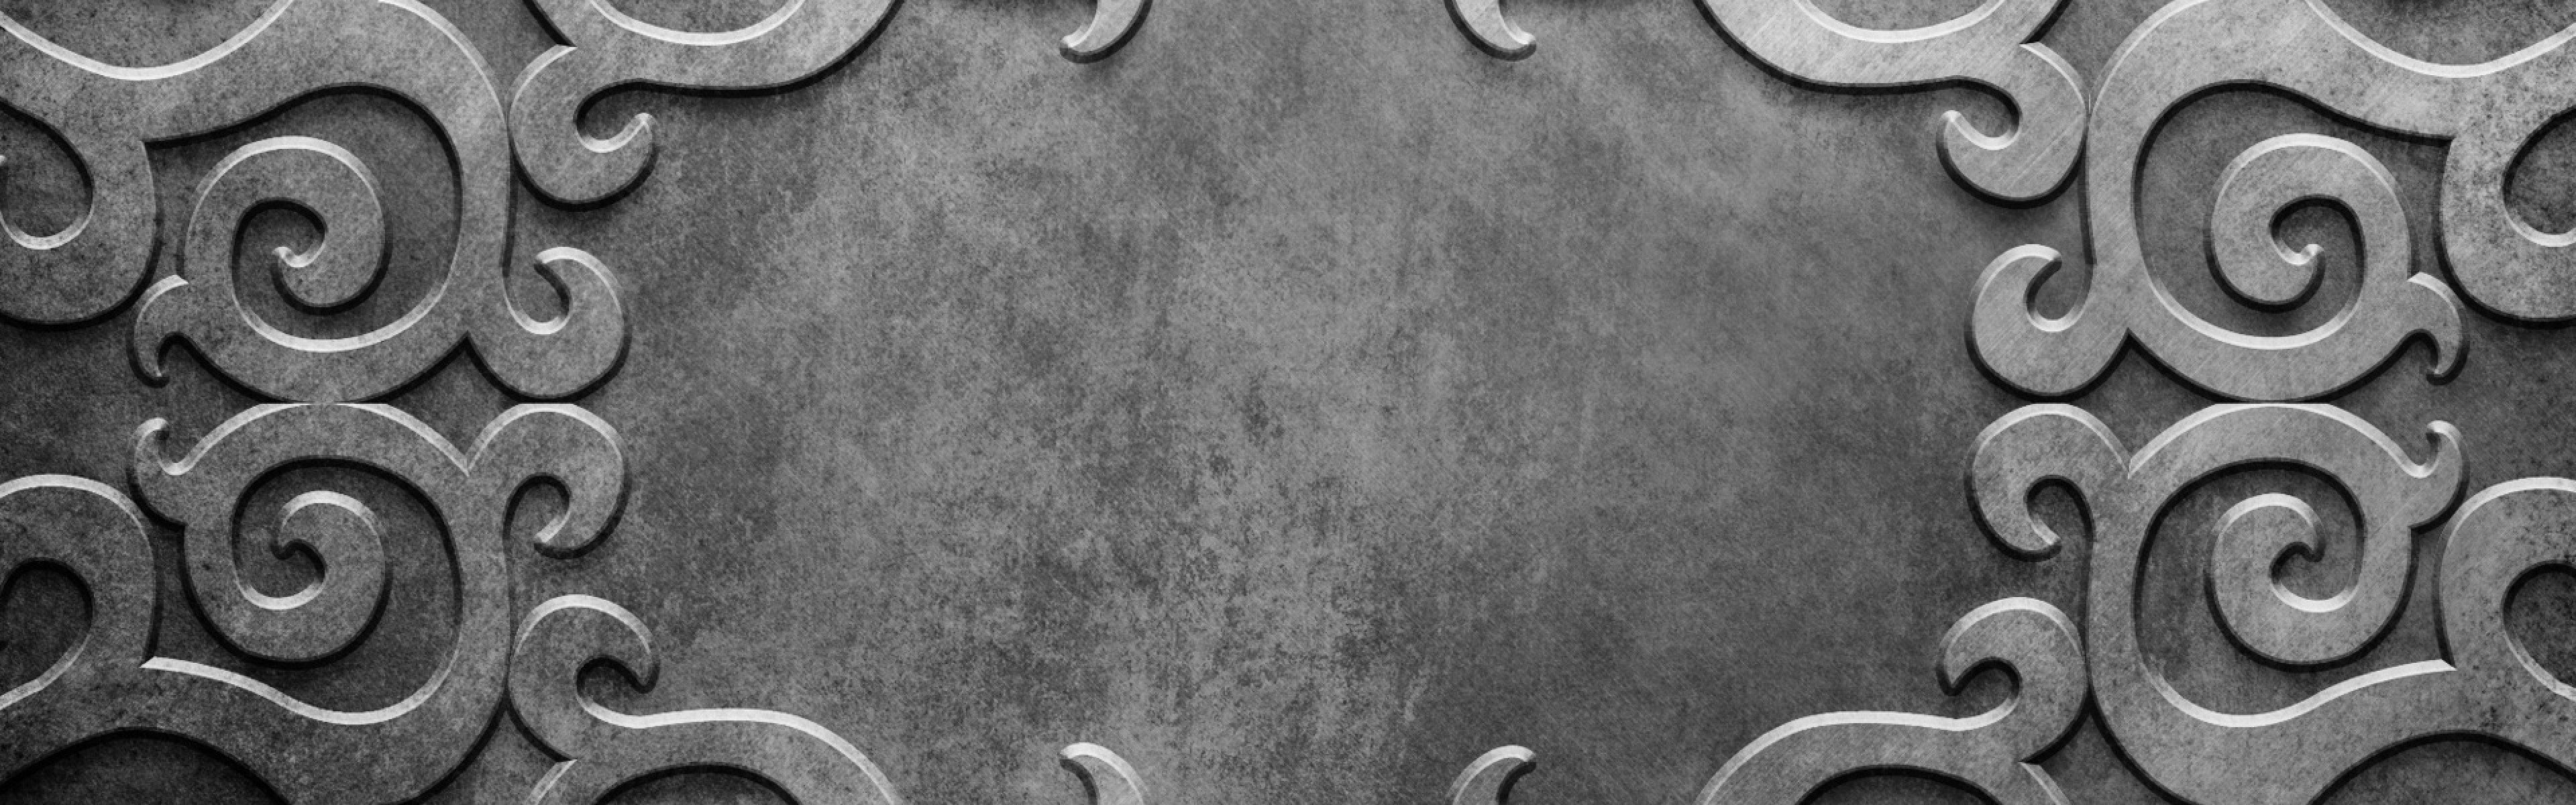 Silver background ·① Download free cool HD wallpapers for ...